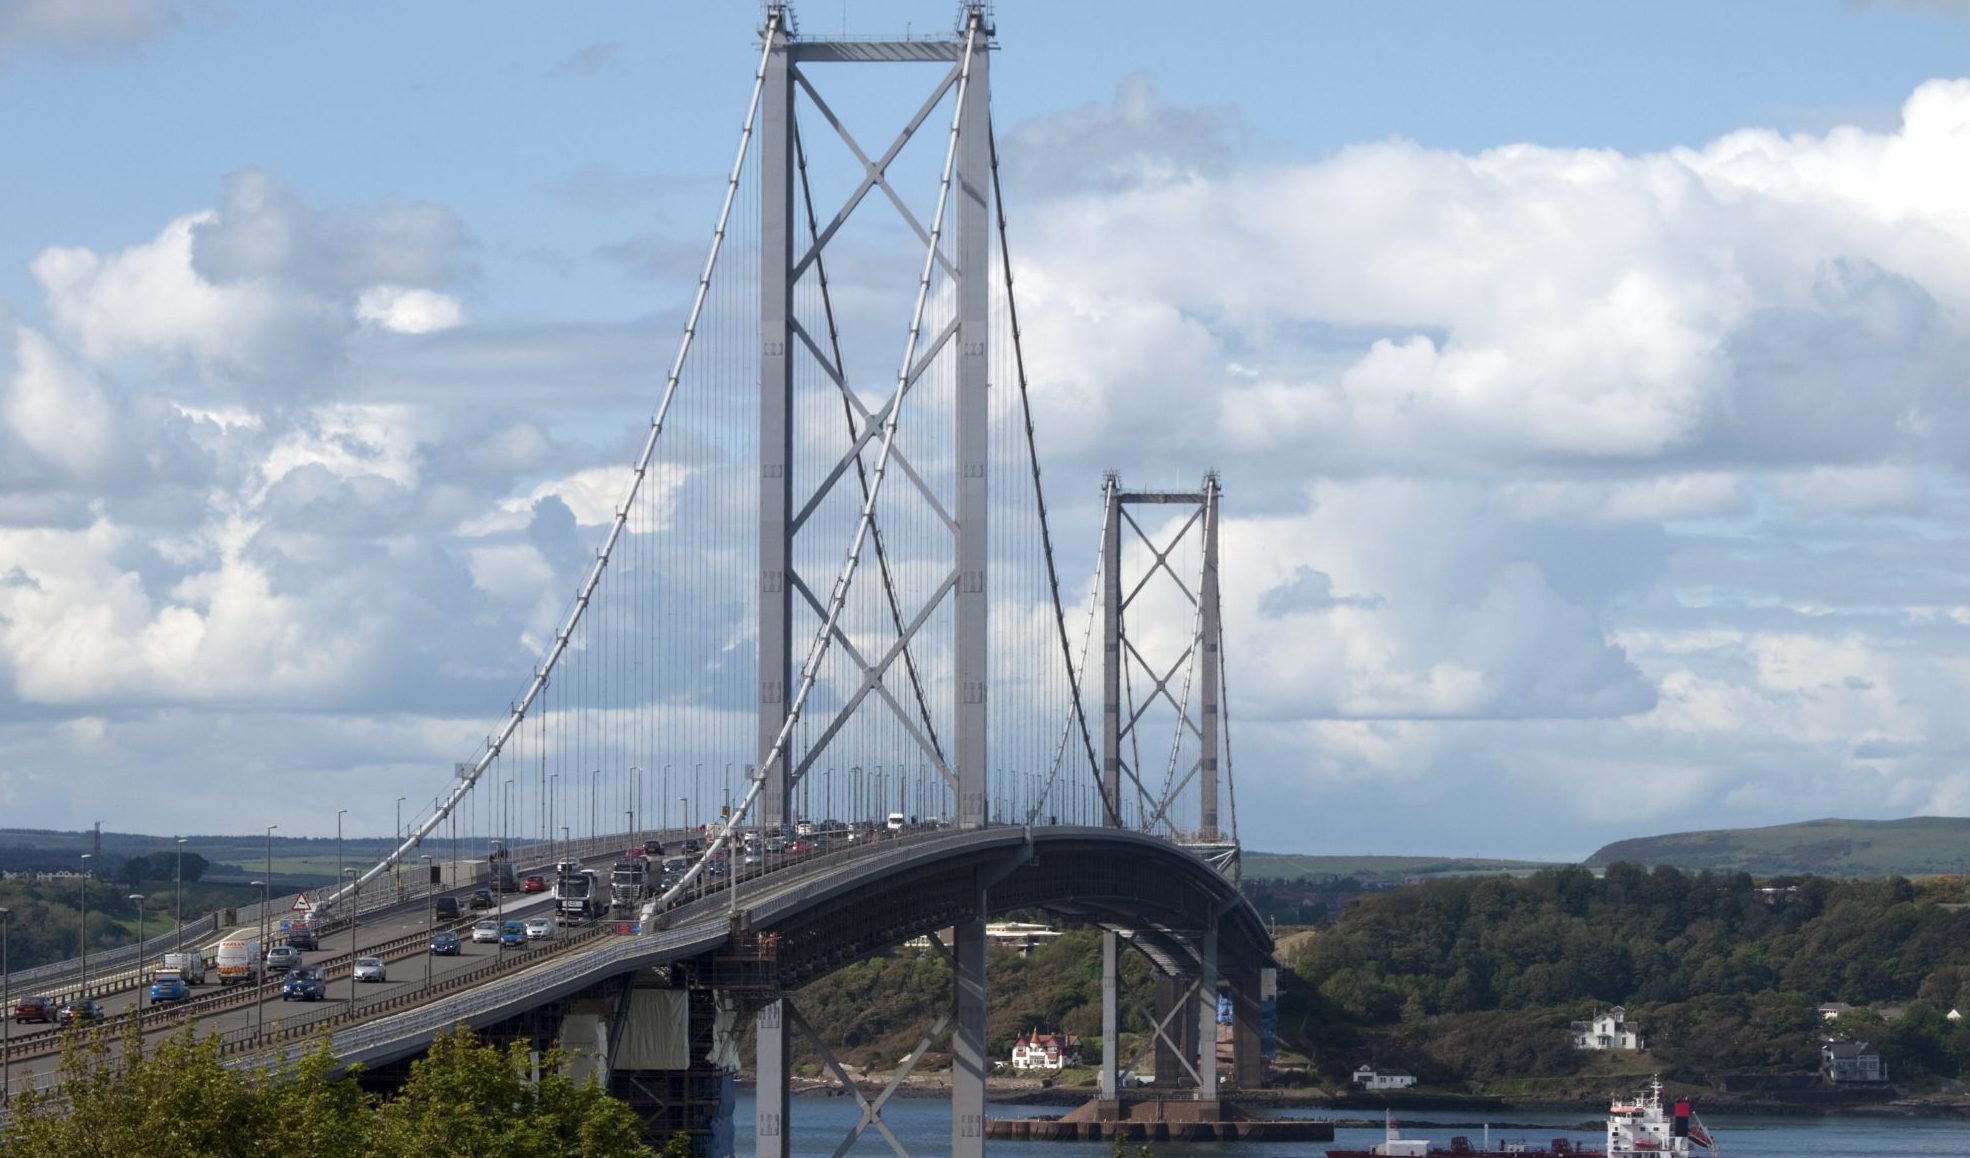 Amey is the operator of the Forth Road Bridge.